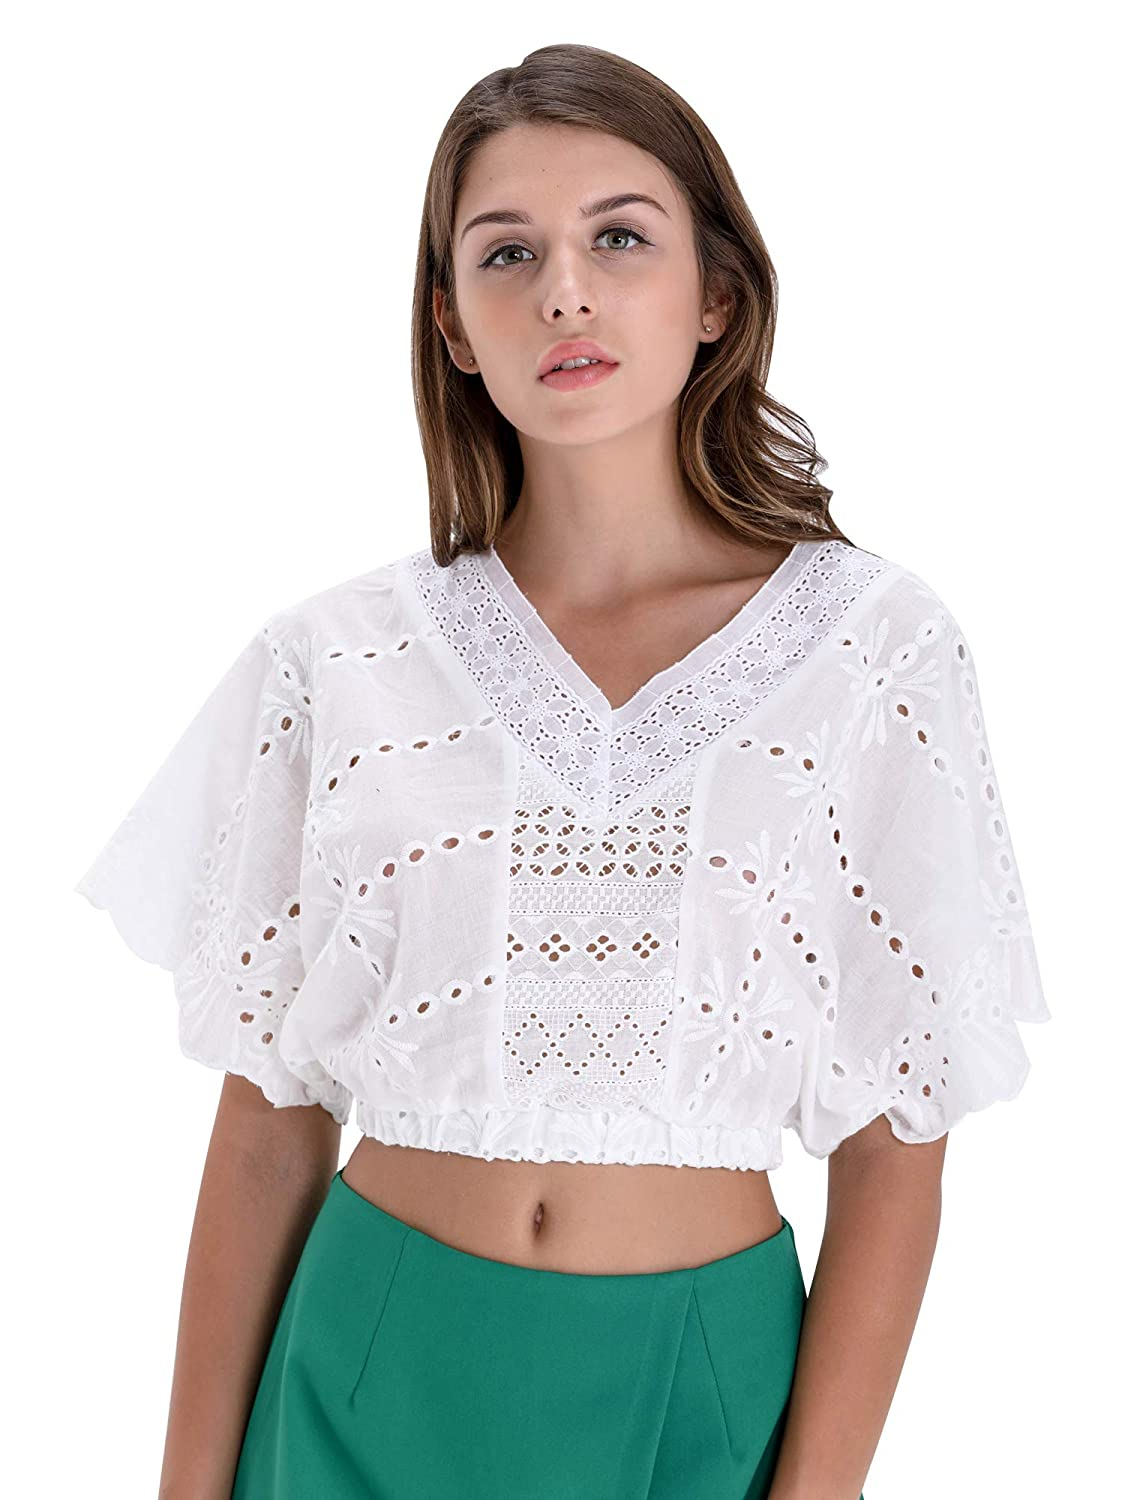 8c90ec5b4a BARGOOS Women All White V Neck Lace Crop Tops Eyelet Hollow Out Batwing  Sleeve Blouse at Amazon Women's Clothing store: